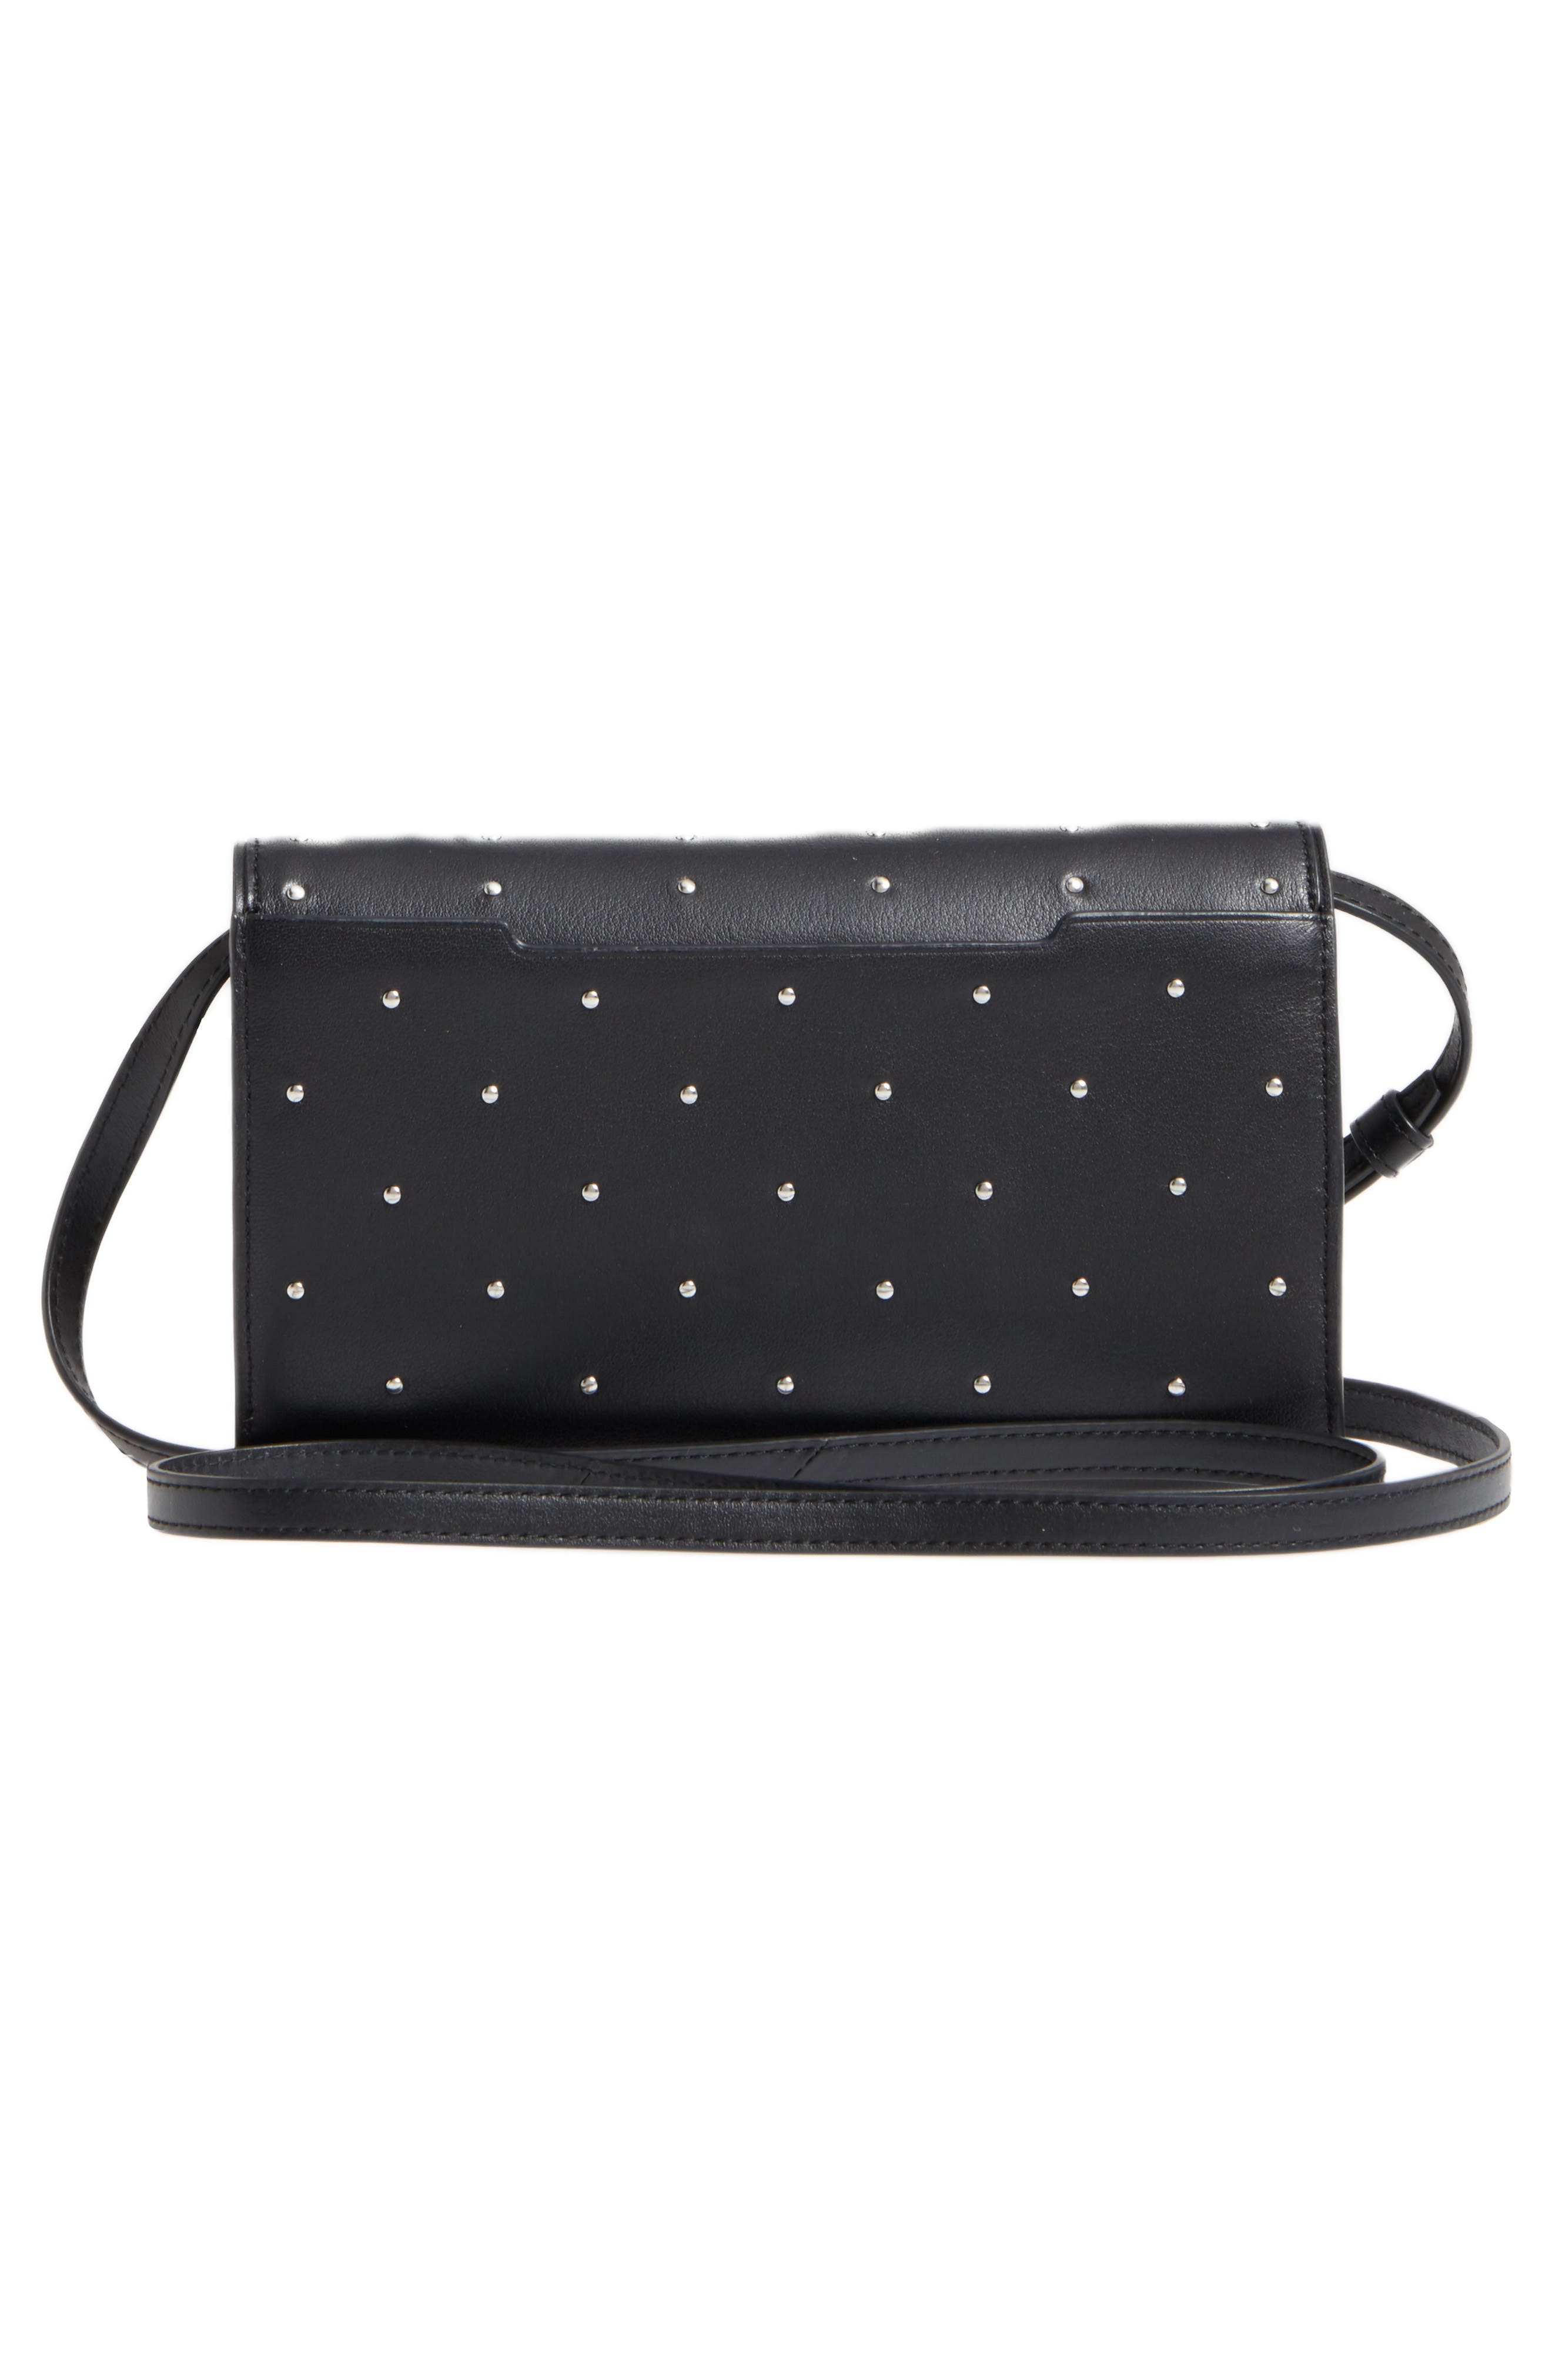 Studded Leather Crossbody Wallet,                             Alternate thumbnail 3, color,                             Black Studs